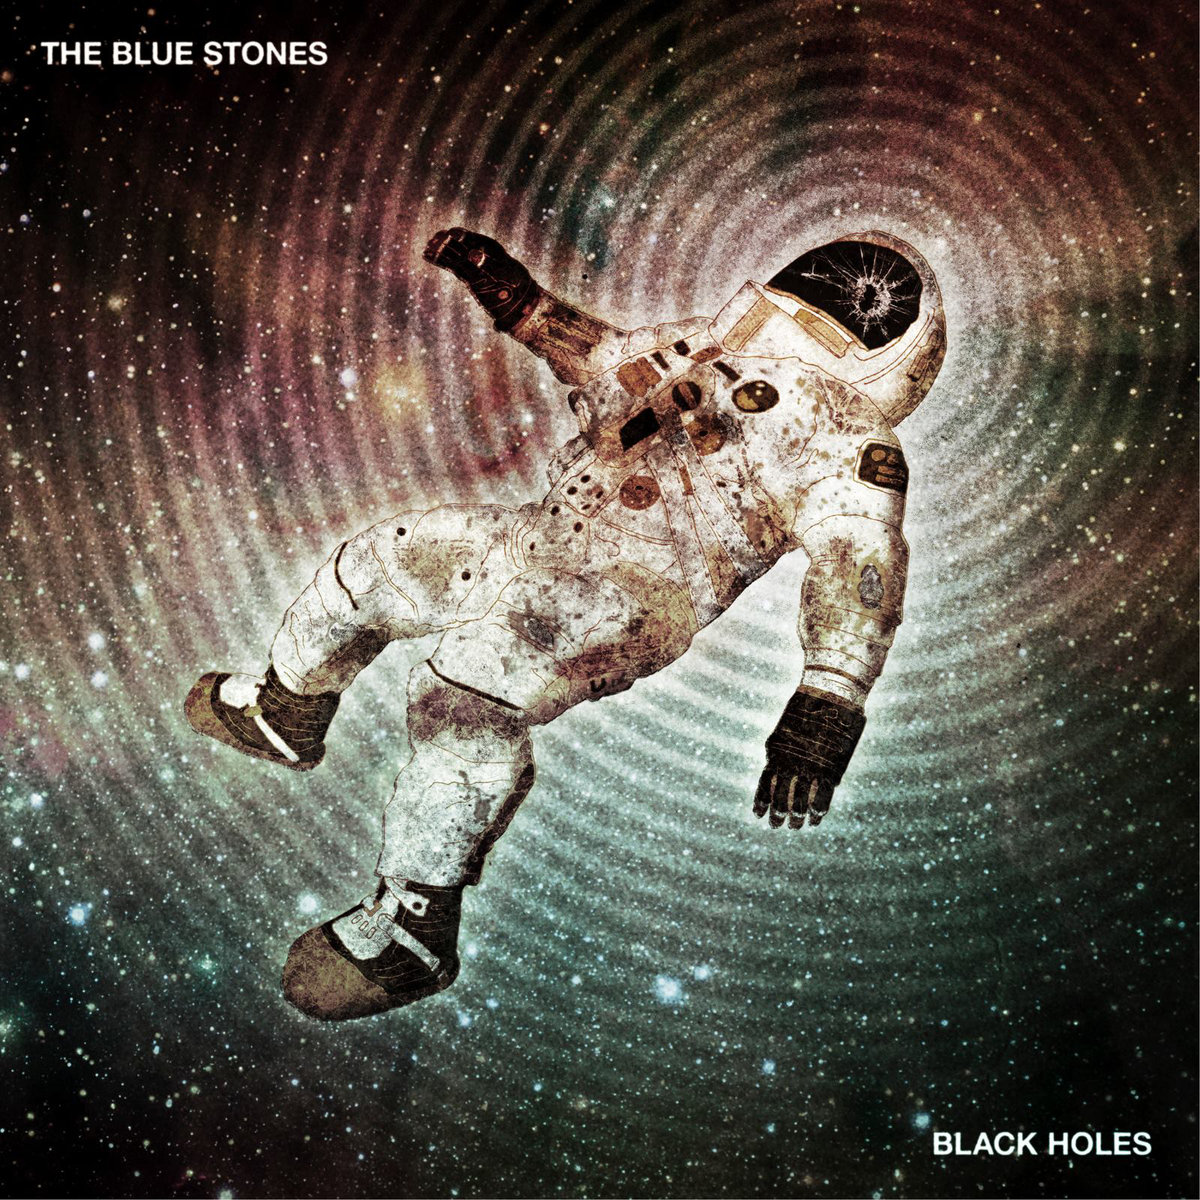 The Blue Stones - Midnight @ 'BLACK HOLES' album (alternative, blues)